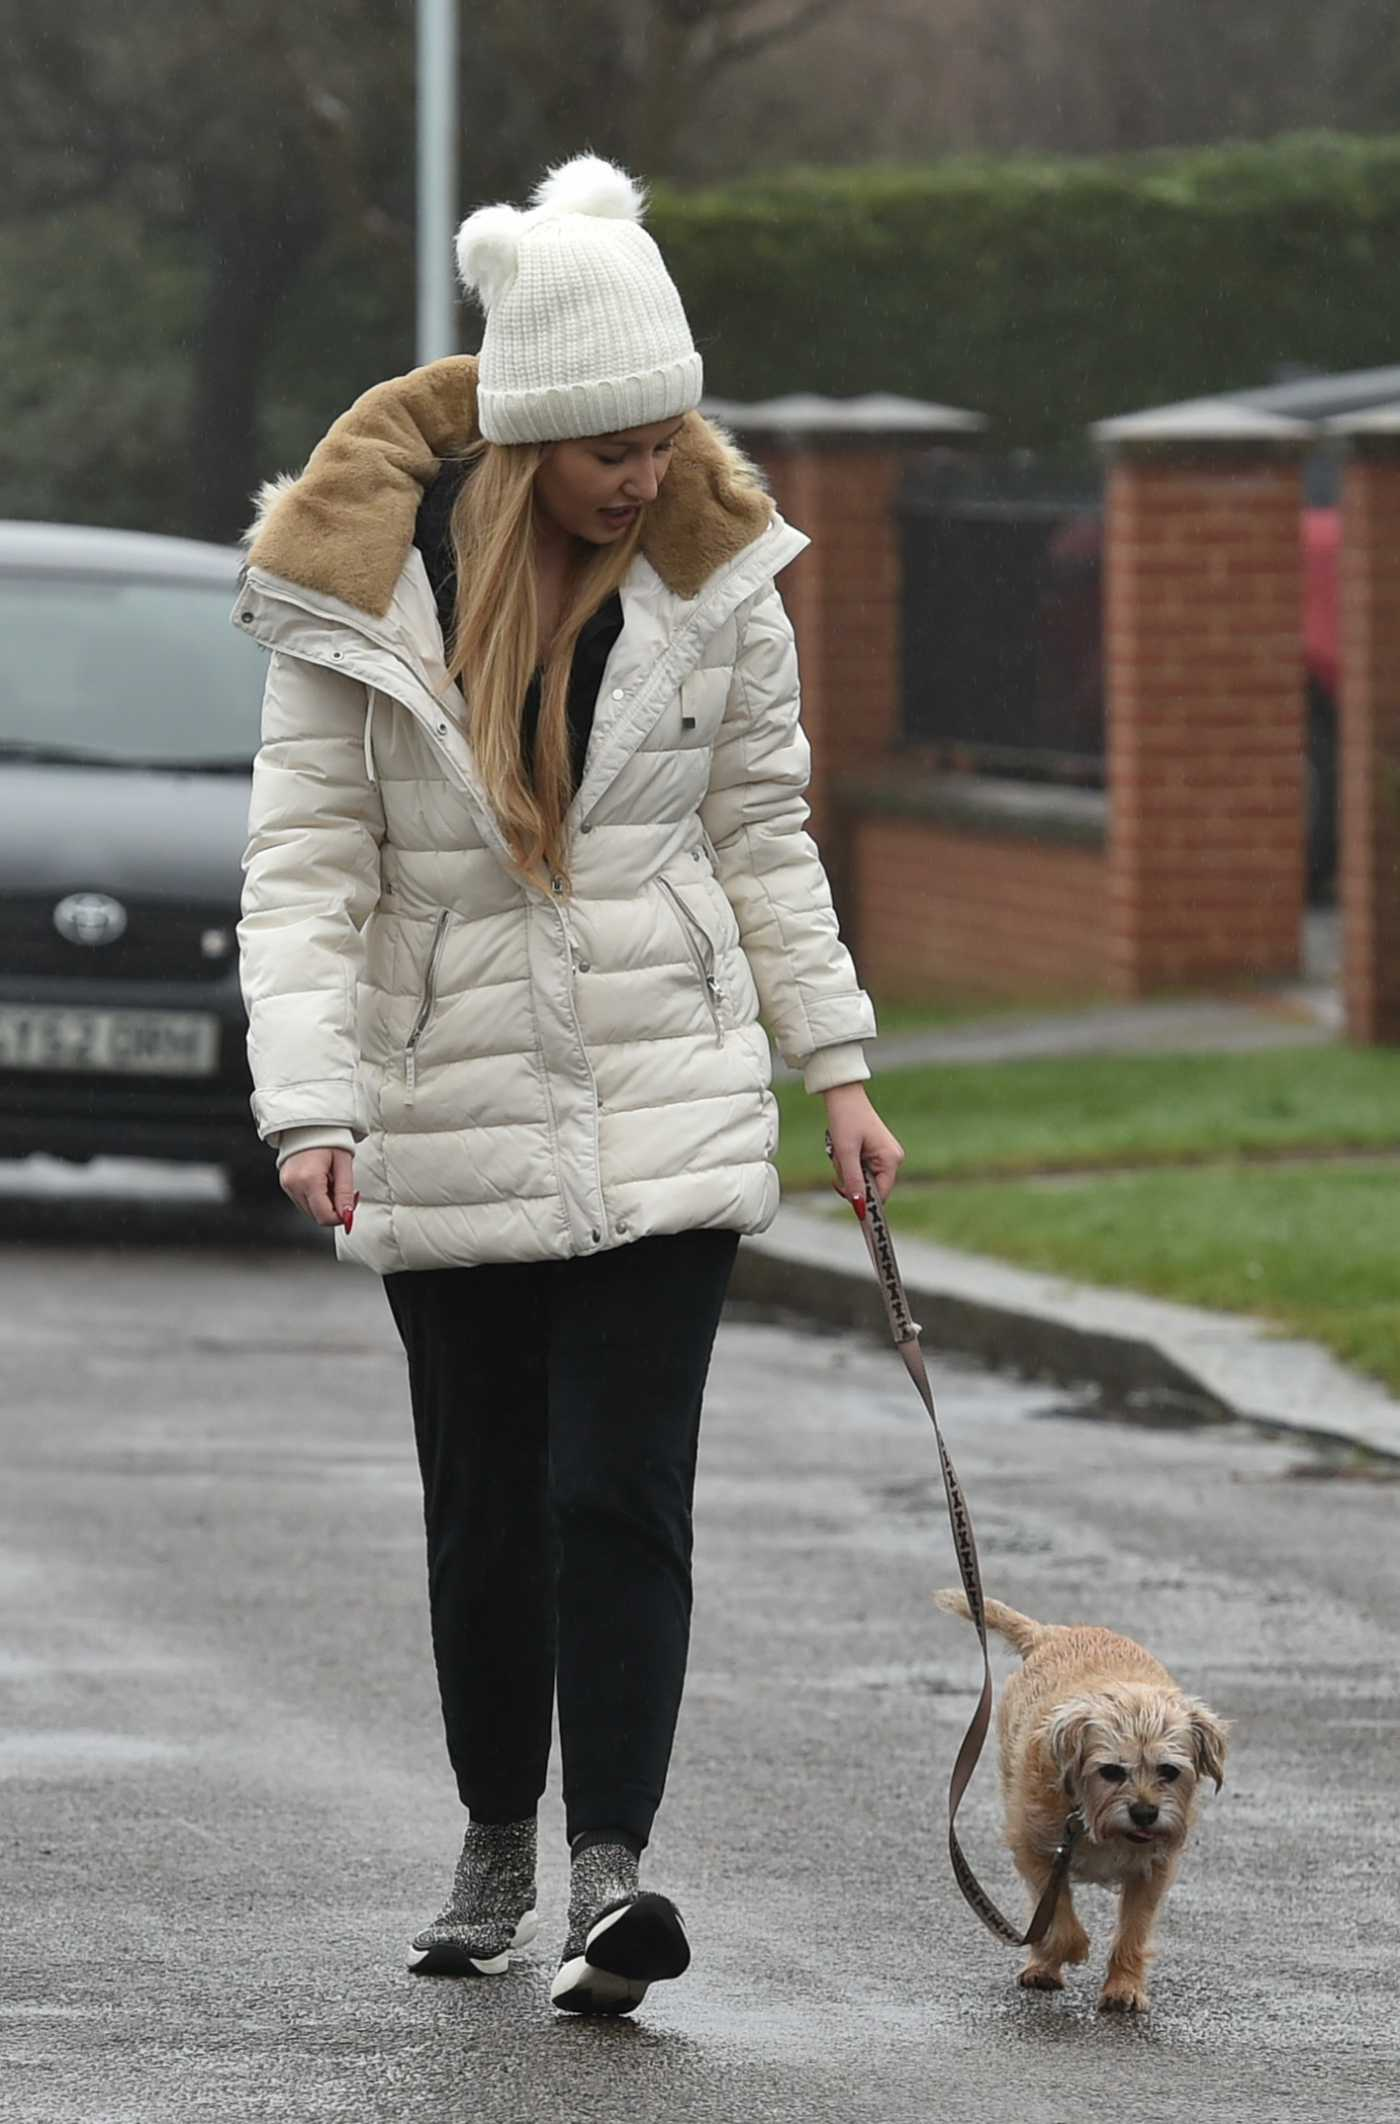 Amy Hart in a White Beanie Hat Walks Her Dog in Worthing, Sussex 02/21/2021